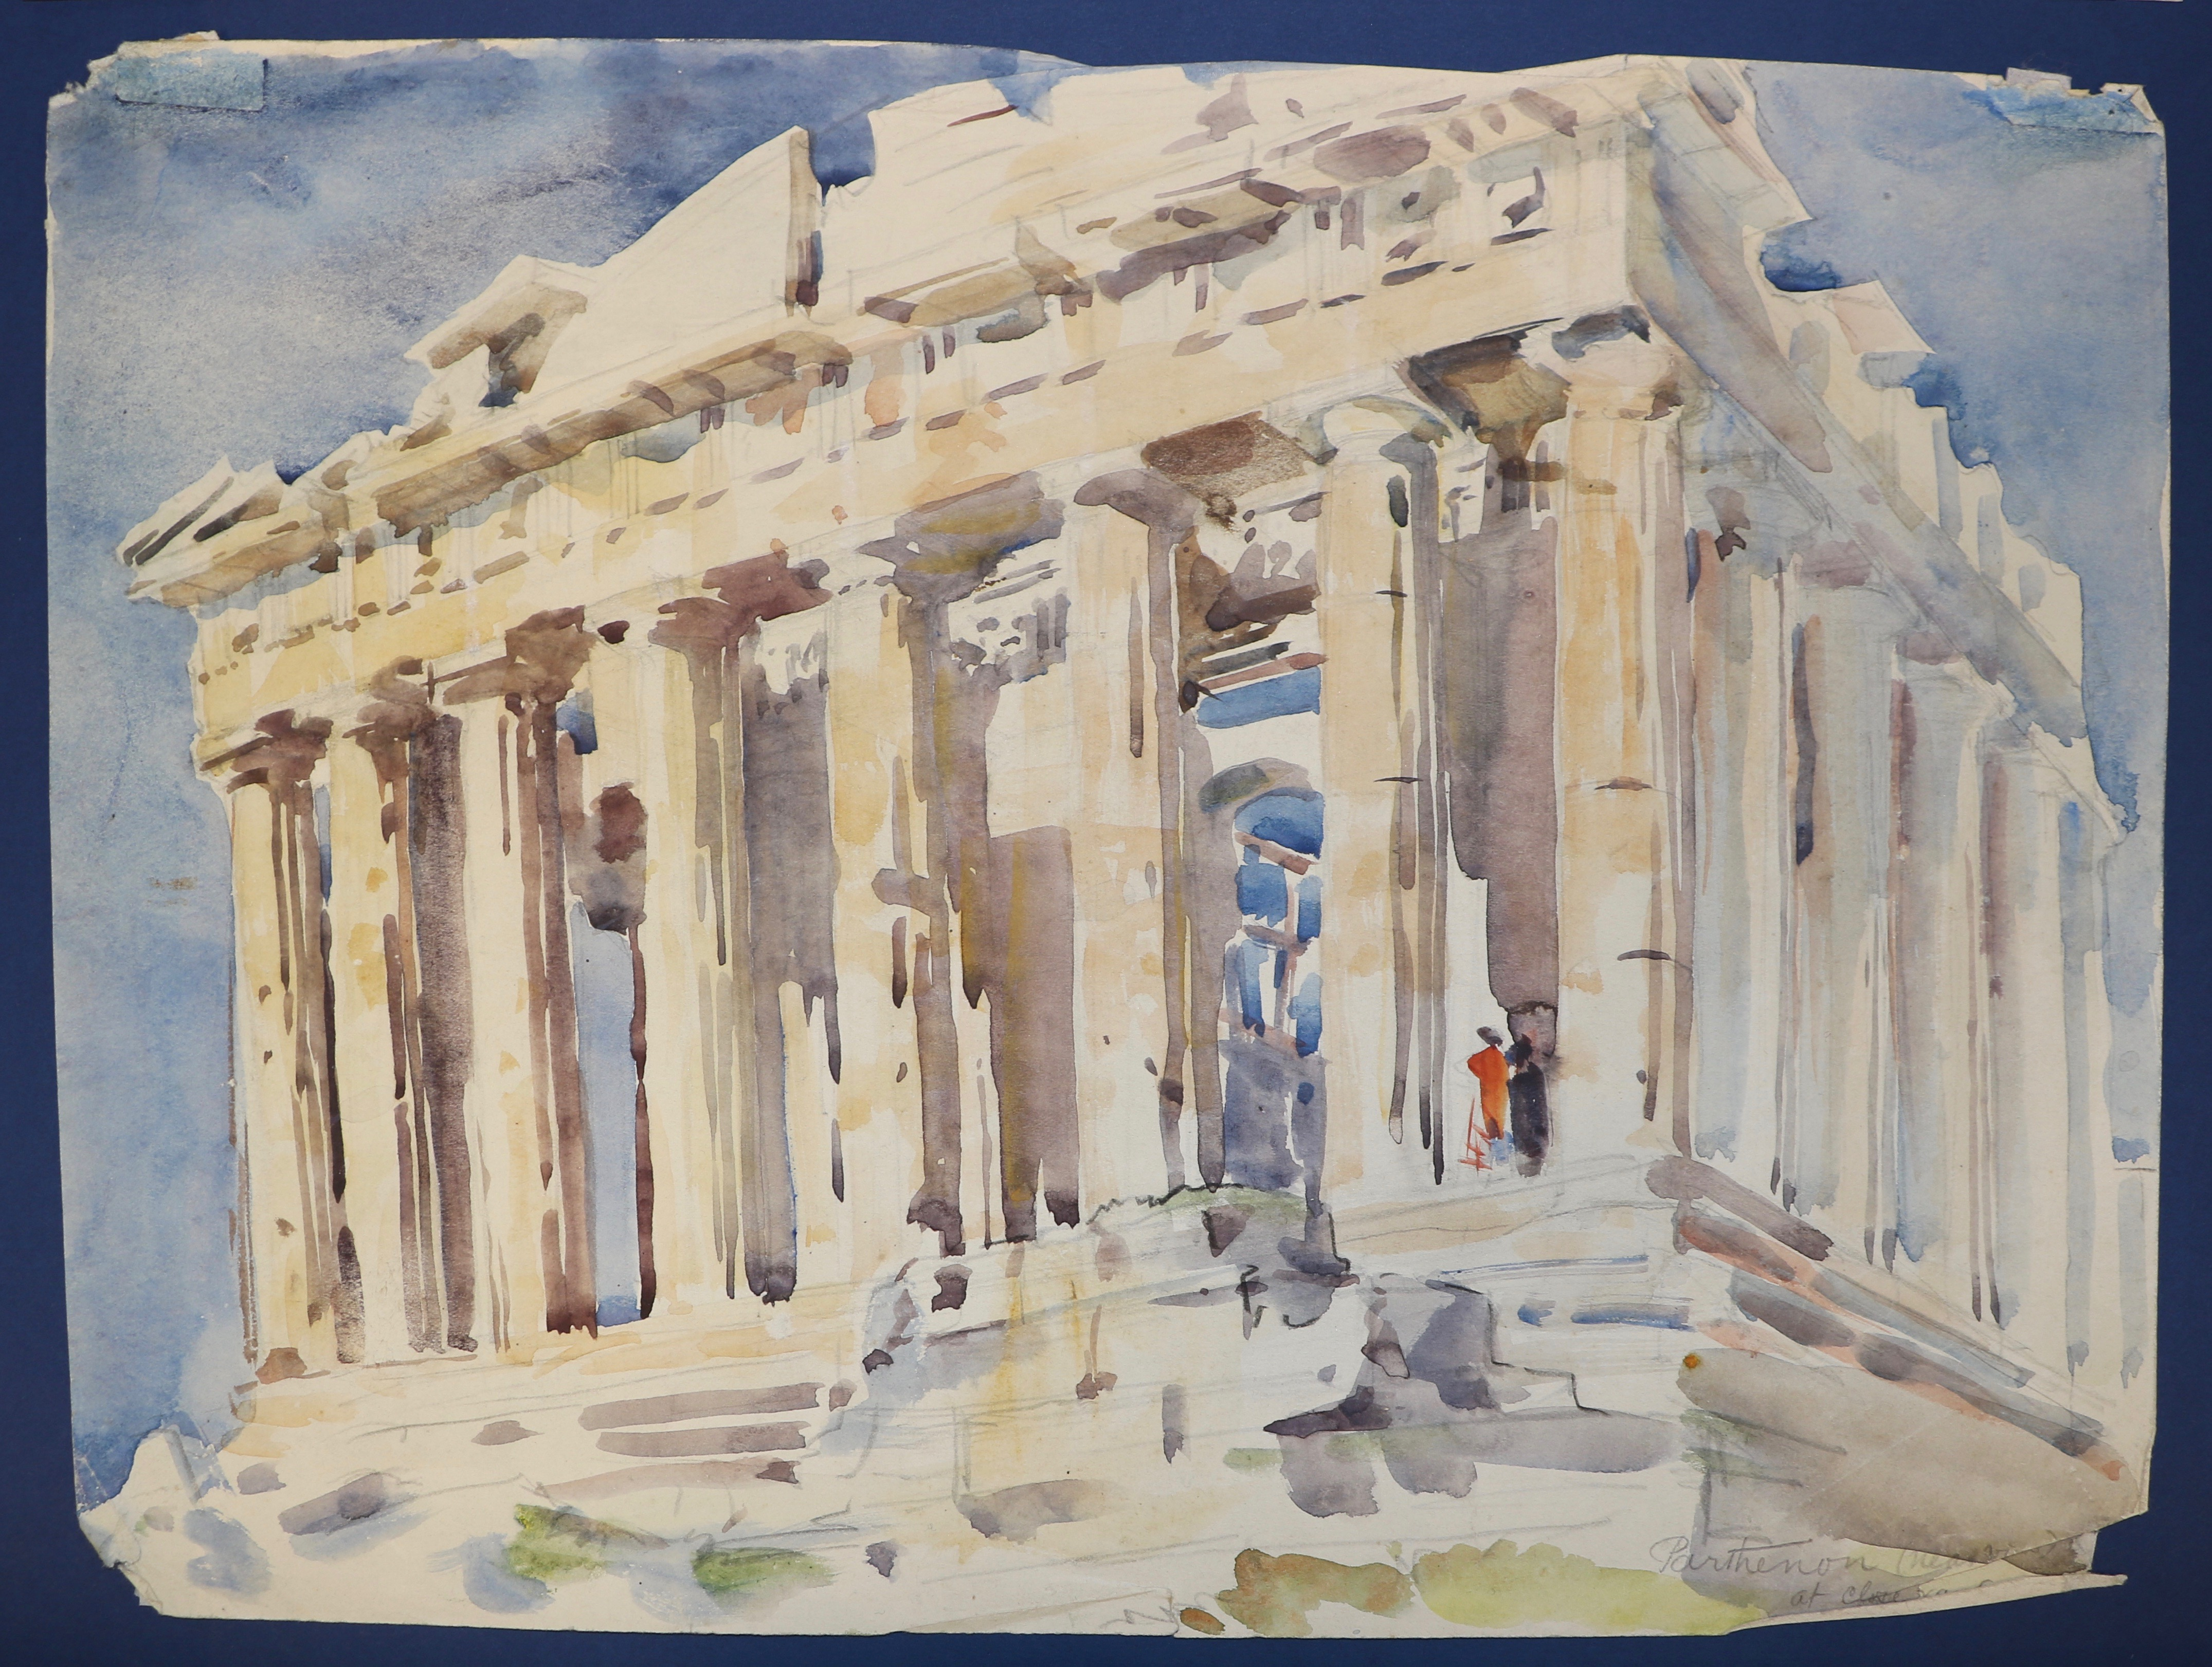 Allen Seaby, Leon of Massalia, Chapter 8: On the Acropolis